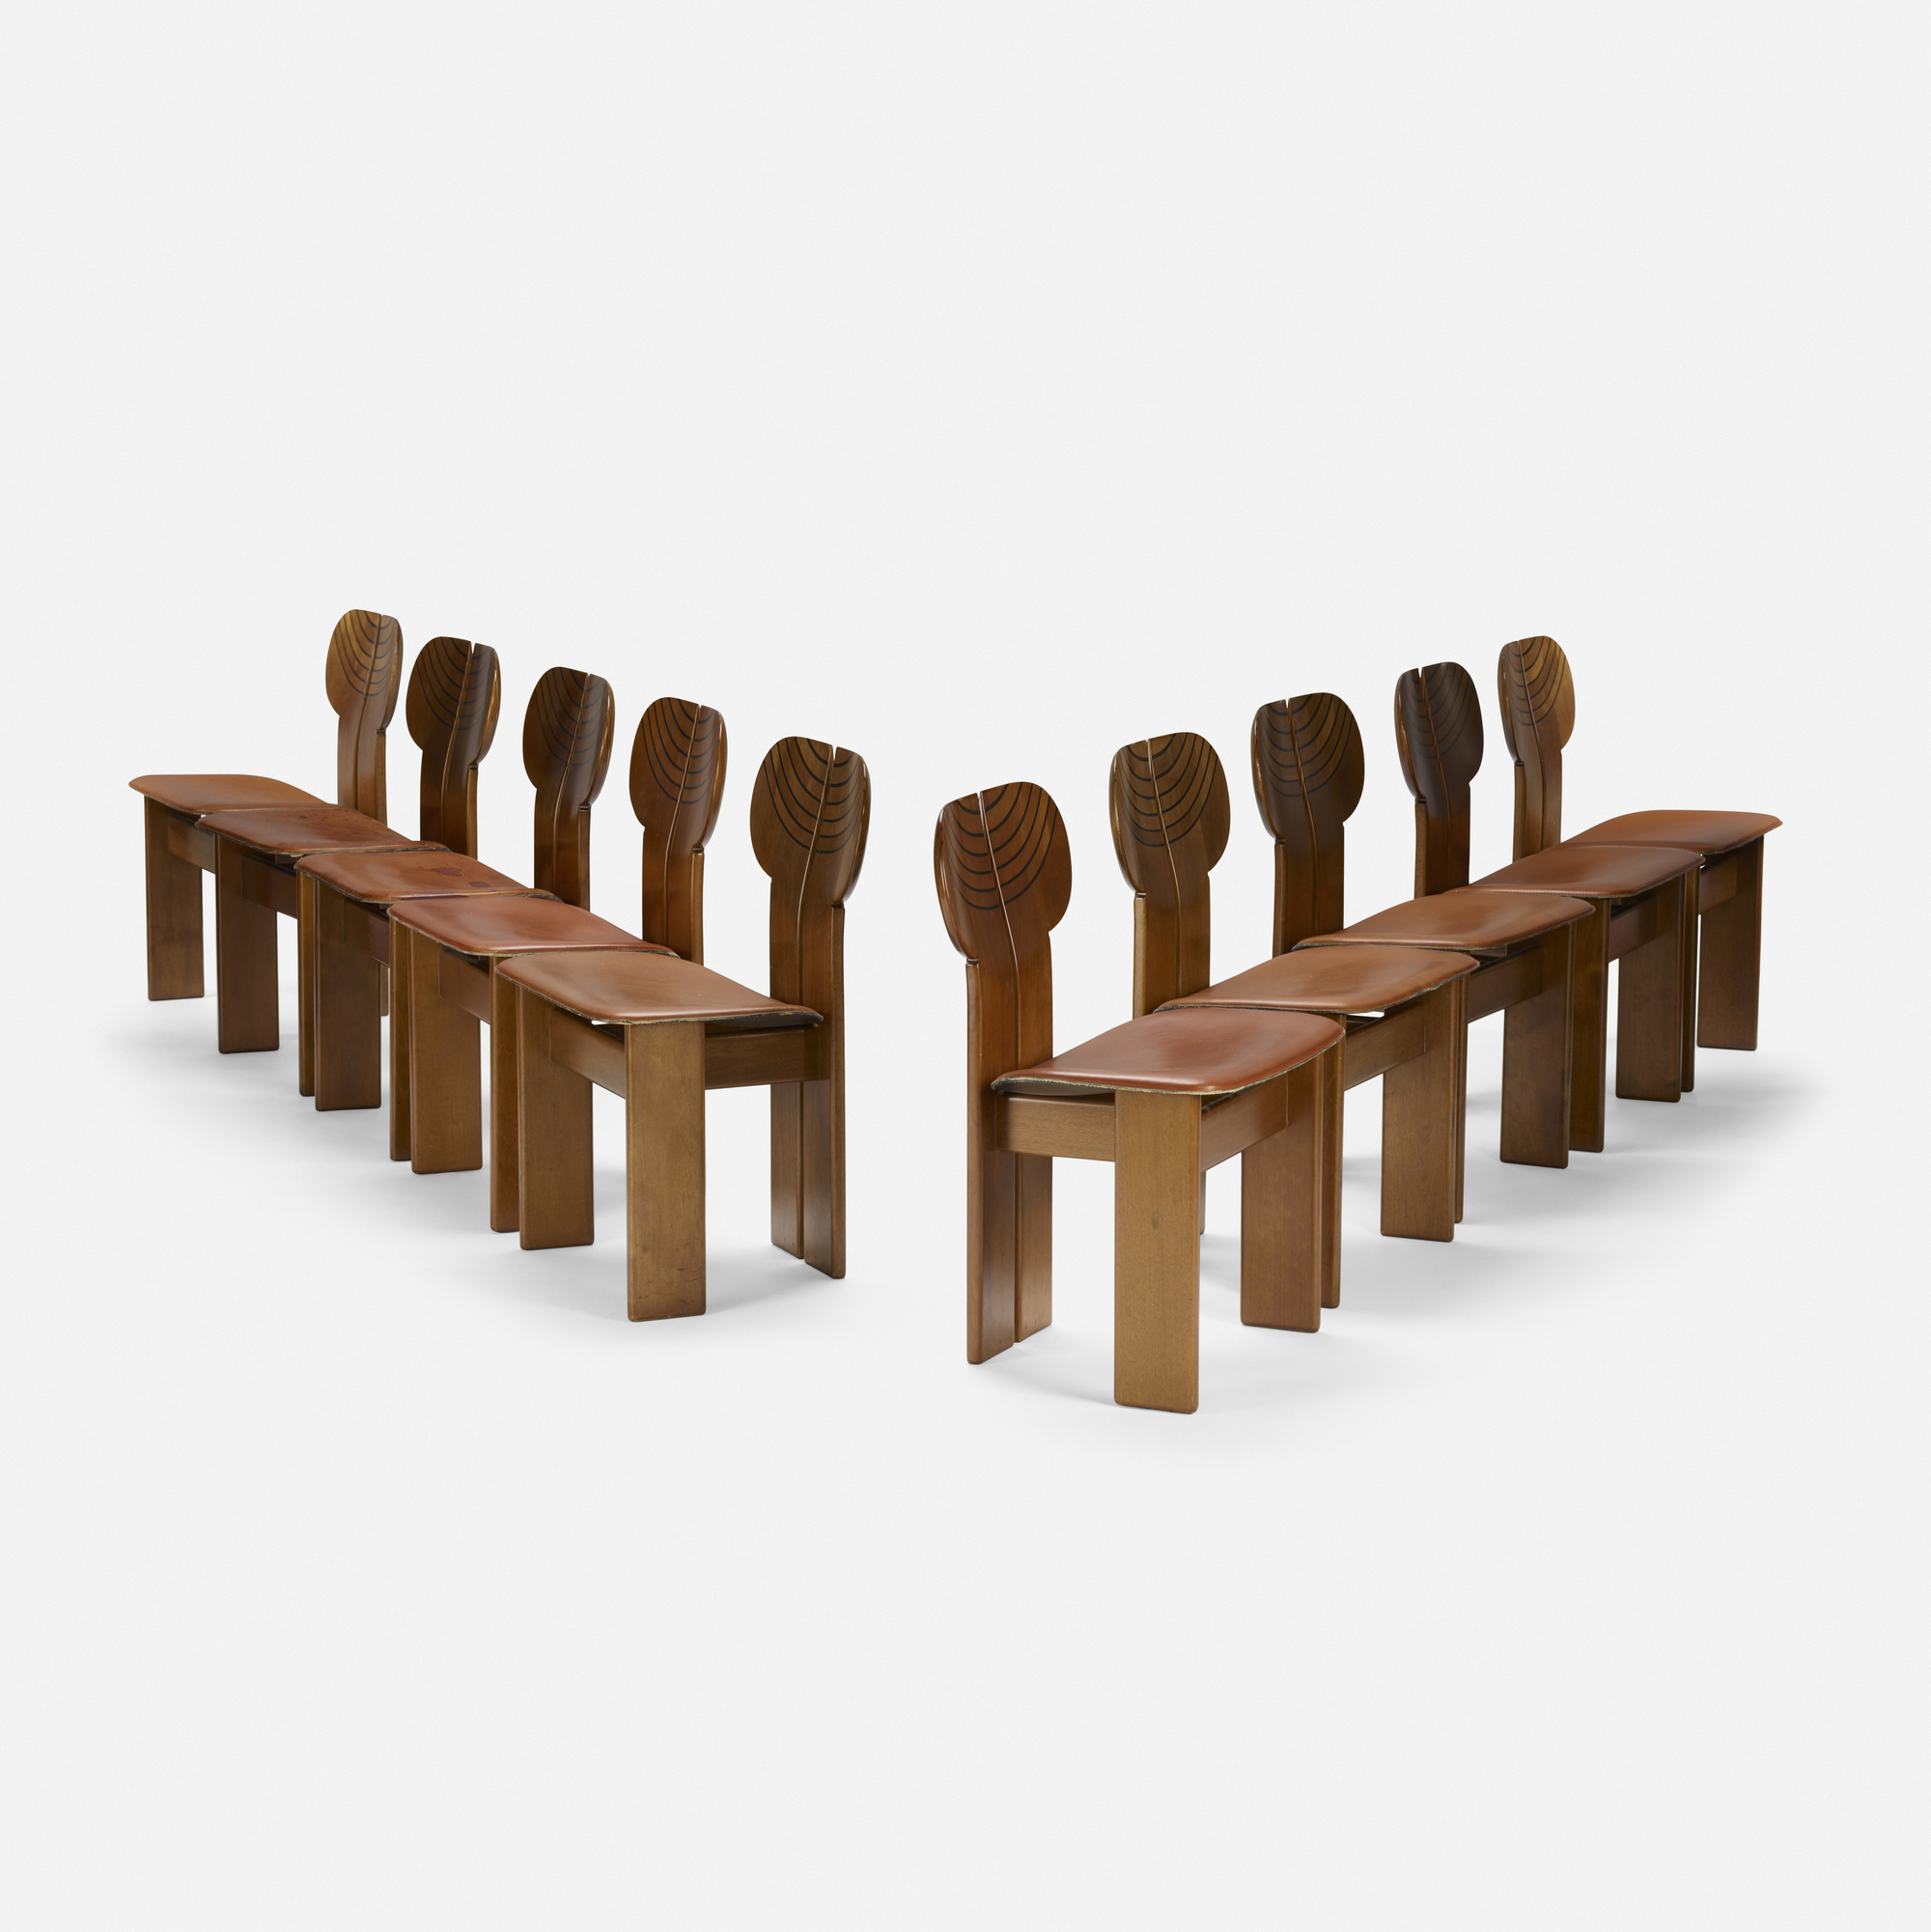 227: Afra and Tobia Scarpa / set of ten Africa chairs from the Artona series (2 of 4)